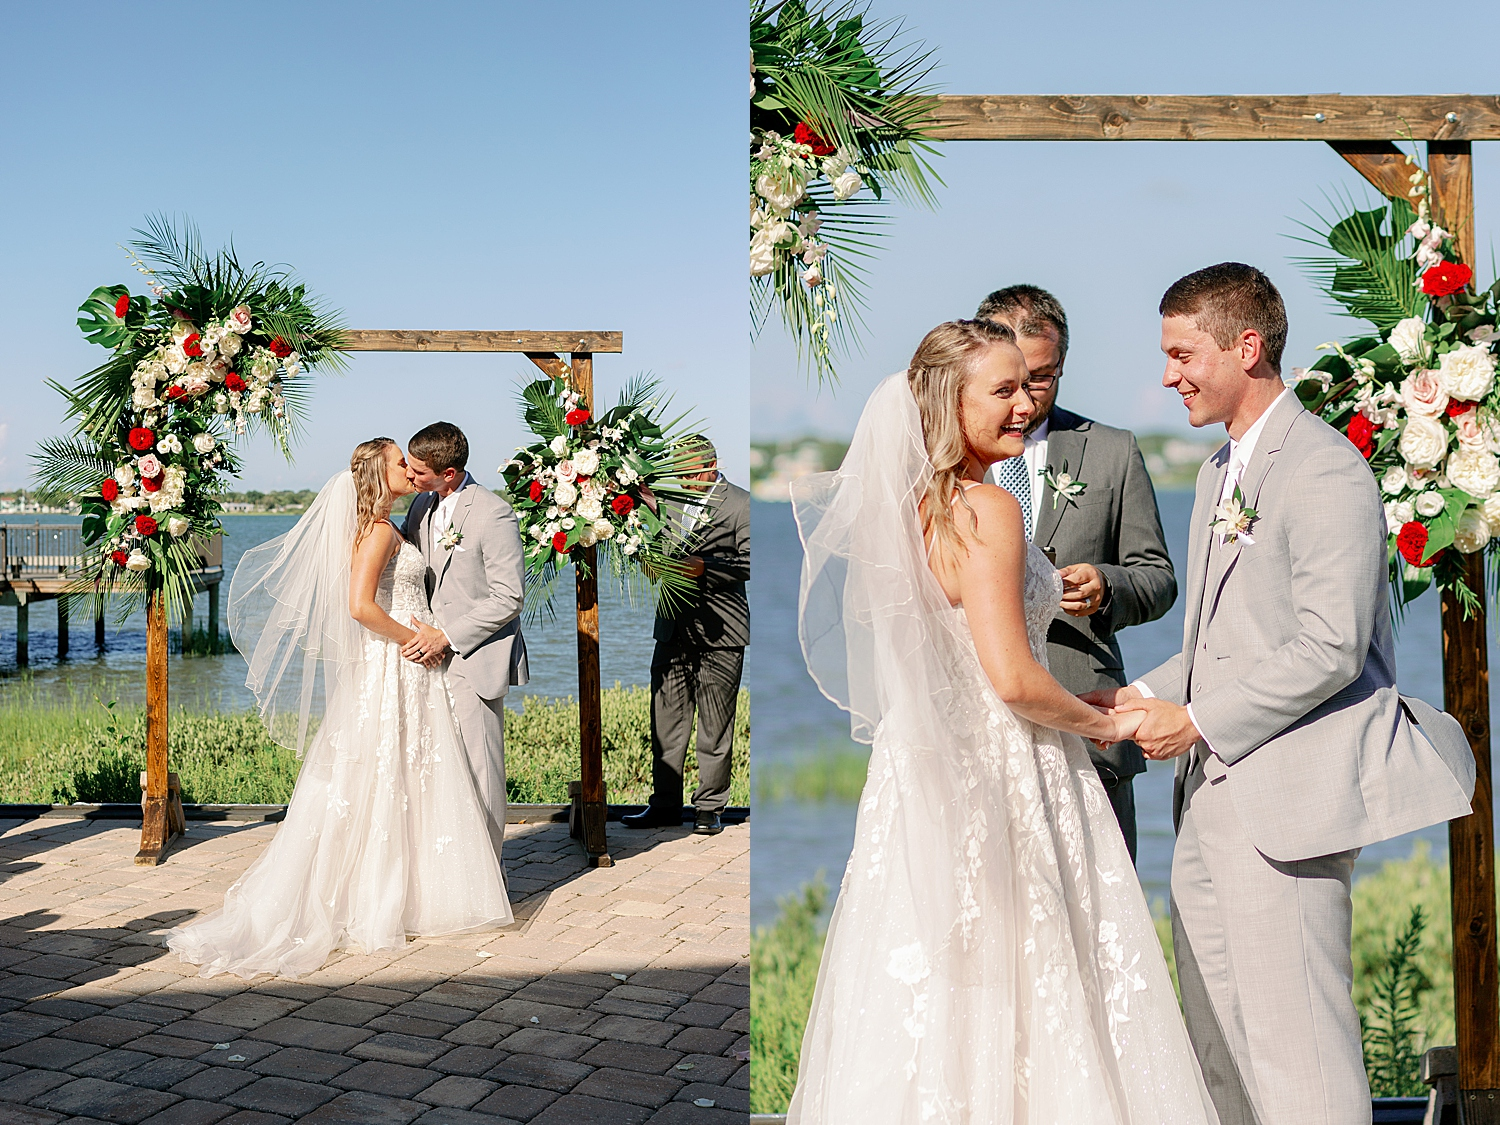 Bride and Groom's first kiss at wedding ceremony